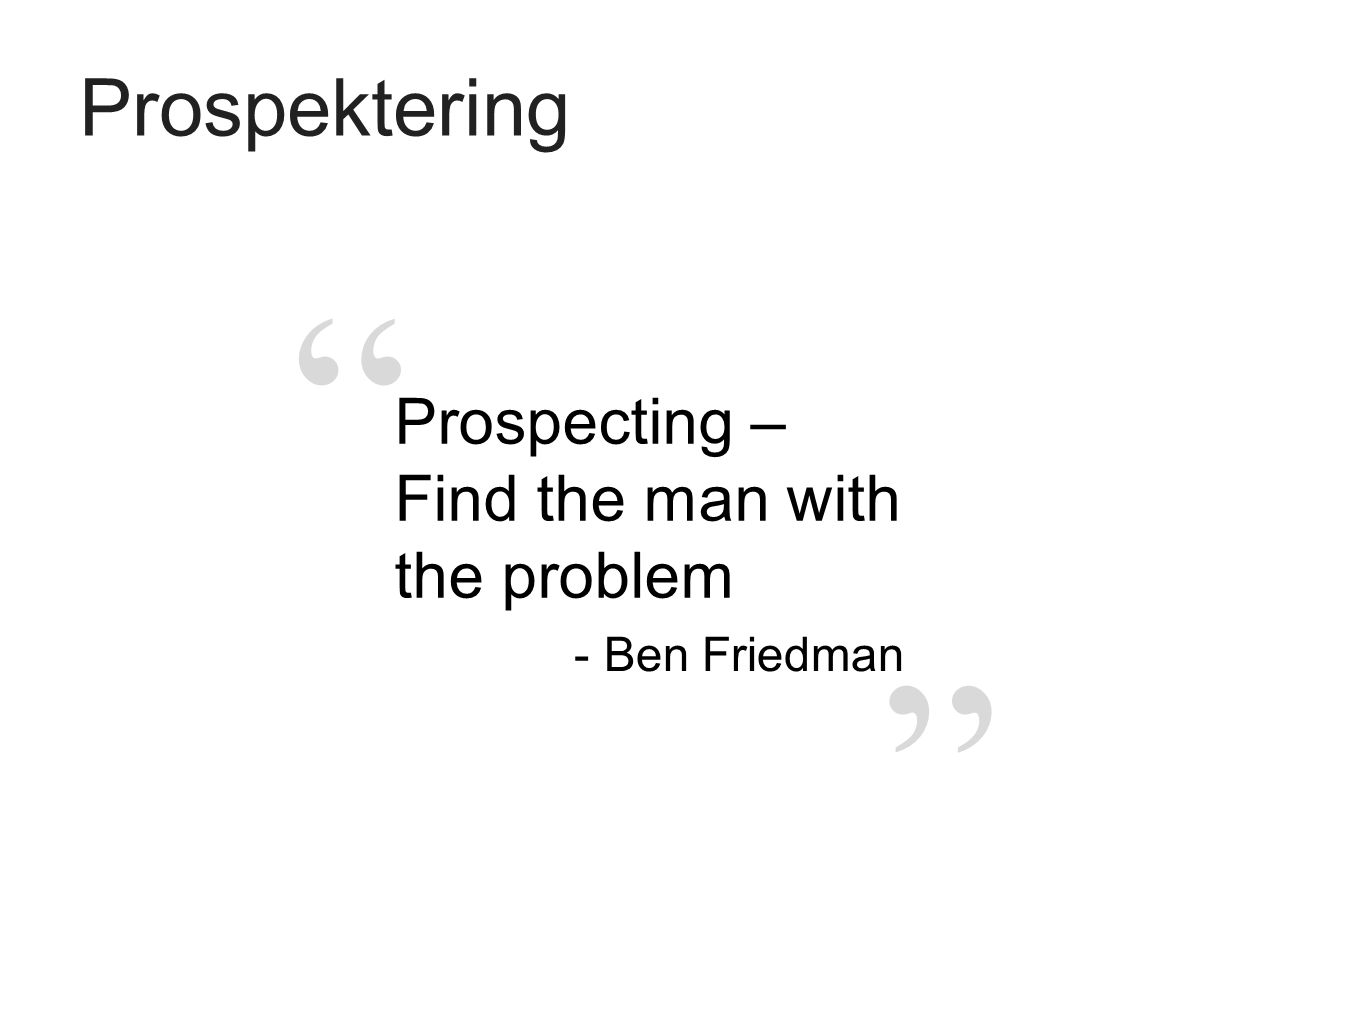 """ "" Prospektering Prospecting – Find the man with the problem - Ben Friedman"